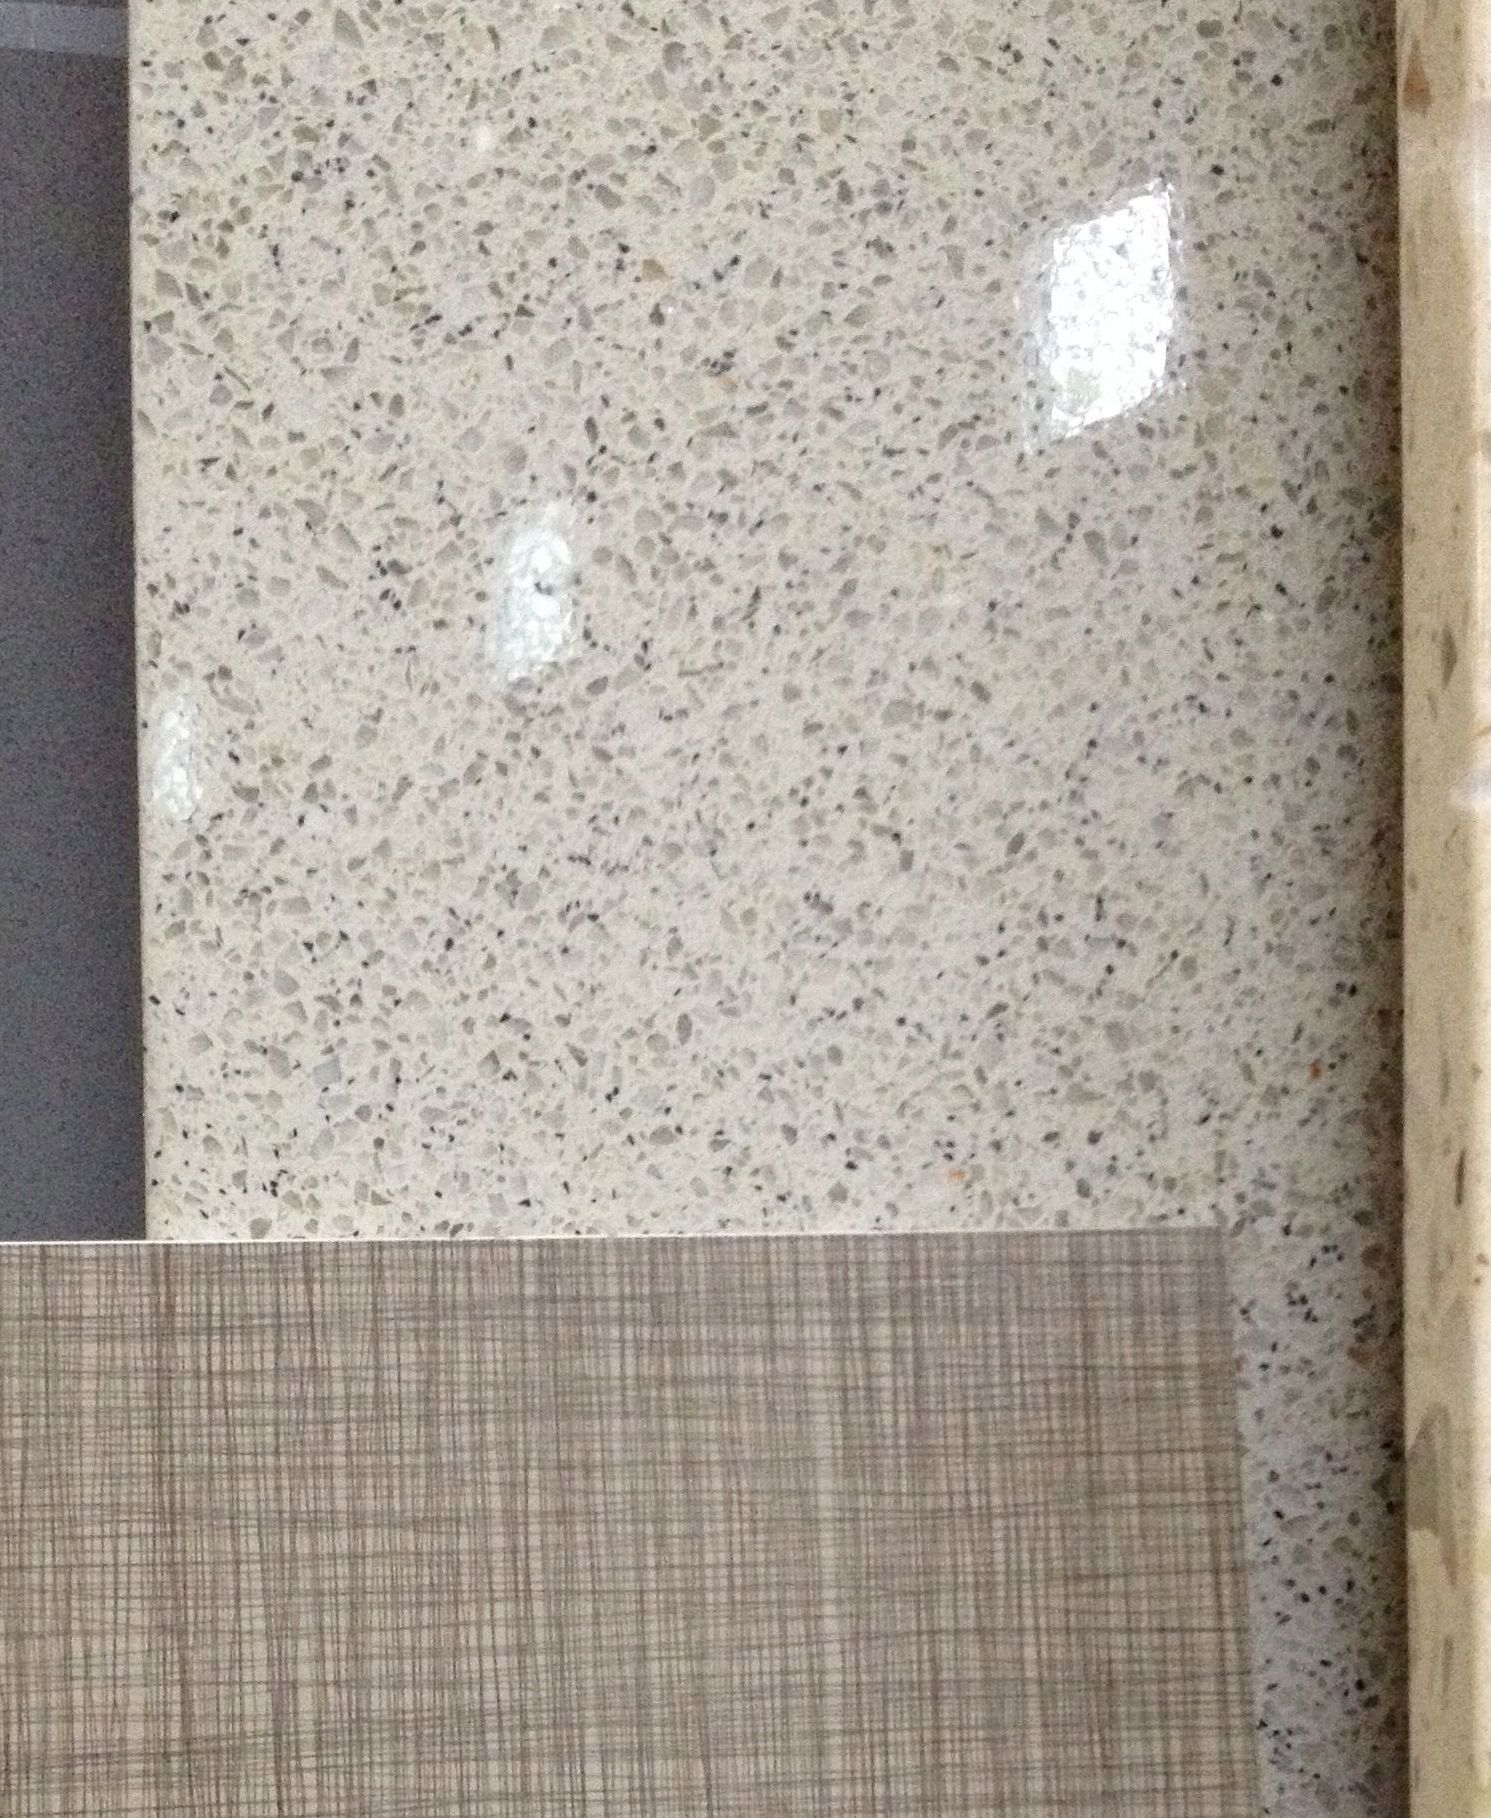 Quartz Countertop, Grassland Color, From Rainbow Stone (shown With Sample  Of Floor And